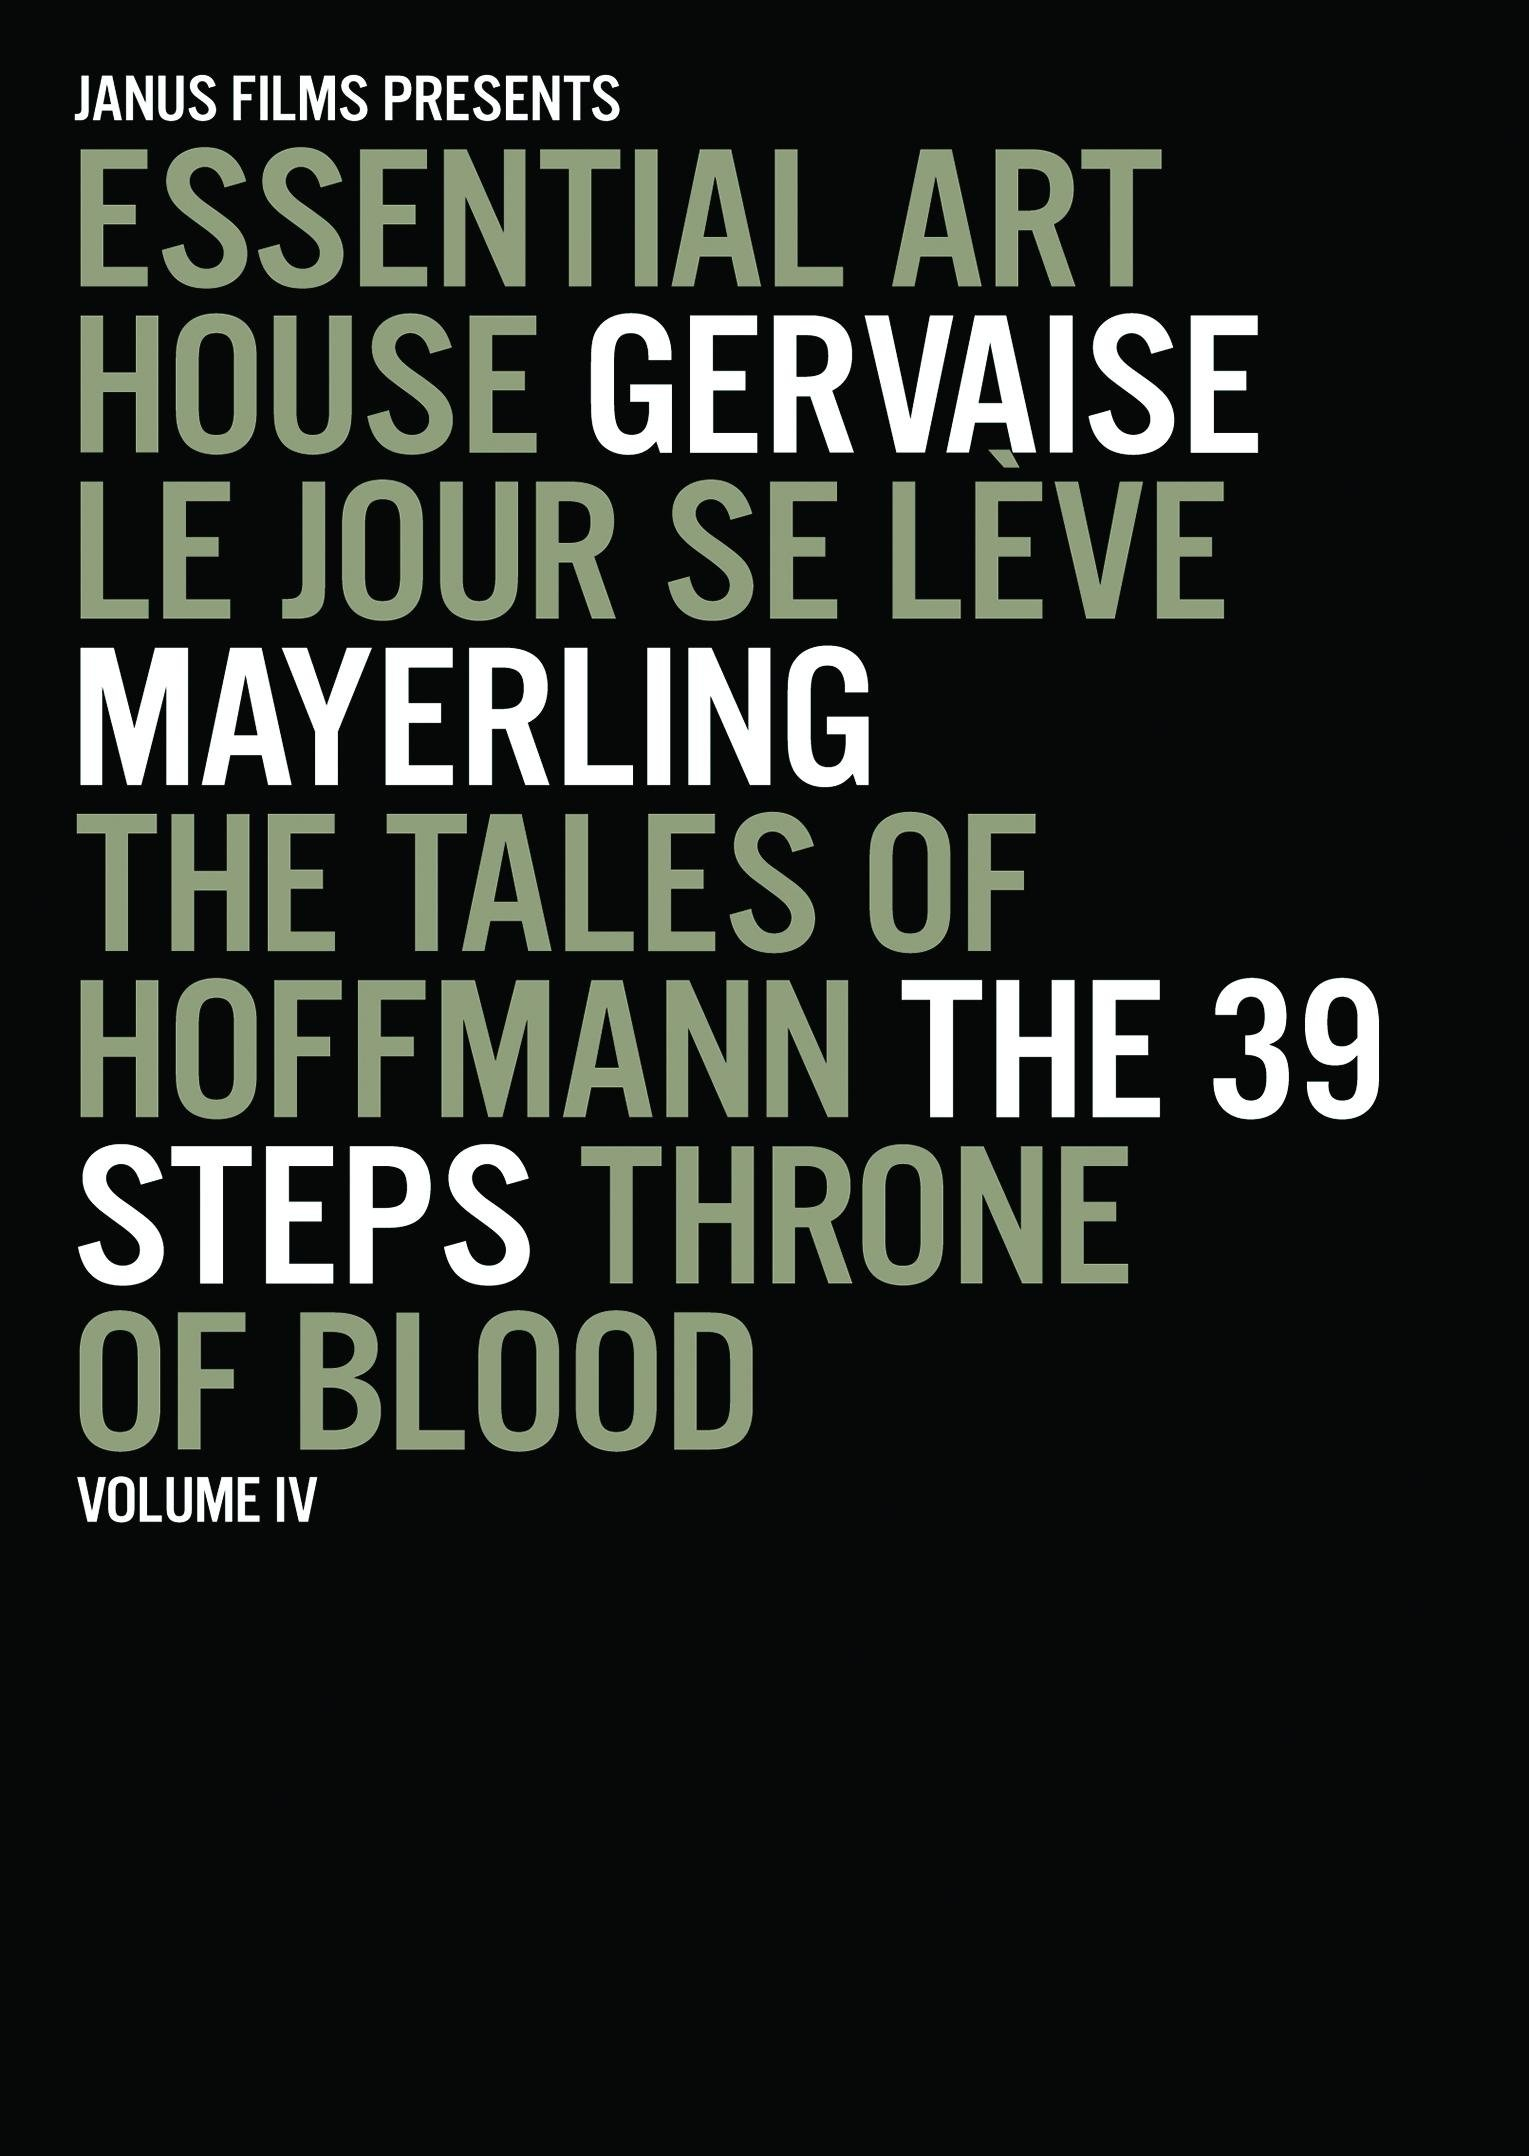 Essential Art House, Volume IV (Gervaise / Le Jour Se Leve / Mayerling / The Tales of Hoffmann / The 39 Steps / Throne of Blood)